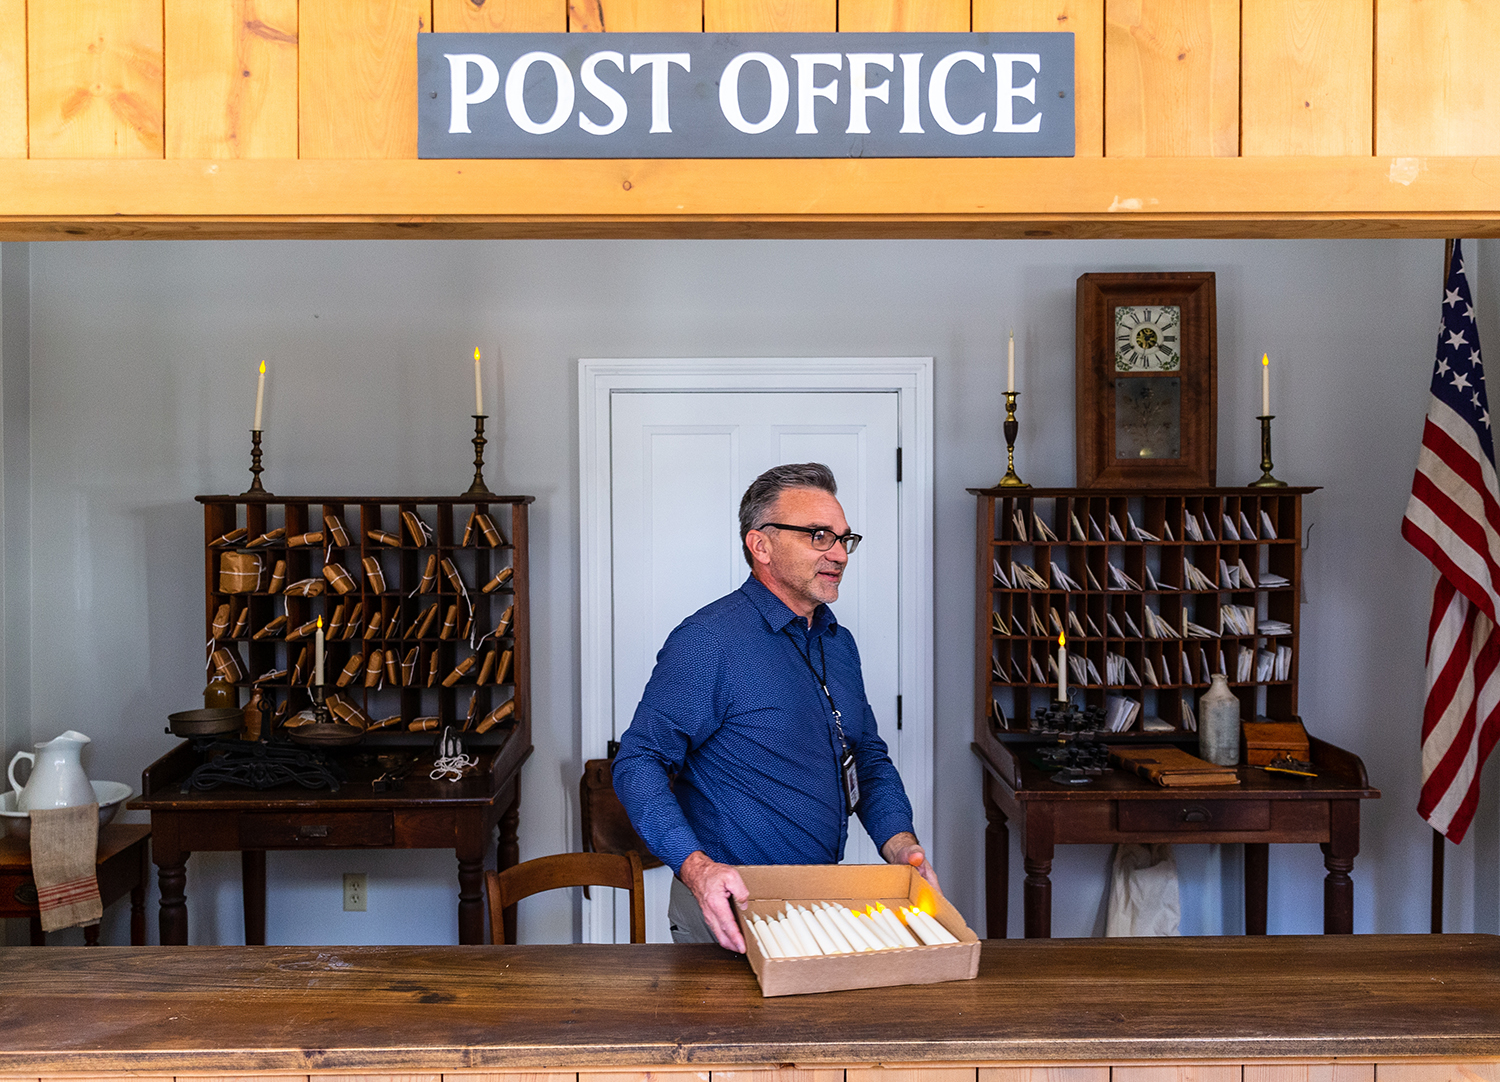 Troy Gilmore, the Site Superintendent for the State Historic Sites of Springfield, places battery operated candles throughout a replica of a post office on the first floor of the three story building that once housed the Lincoln-Herndon Law Offices that has now become the tourist welcome center for the Springfield Convention and Visitors Bureau, Wednesday, Nov. 21, 2018, in Springfield, Ill. [Justin L. Fowler/The State Journal-Register]